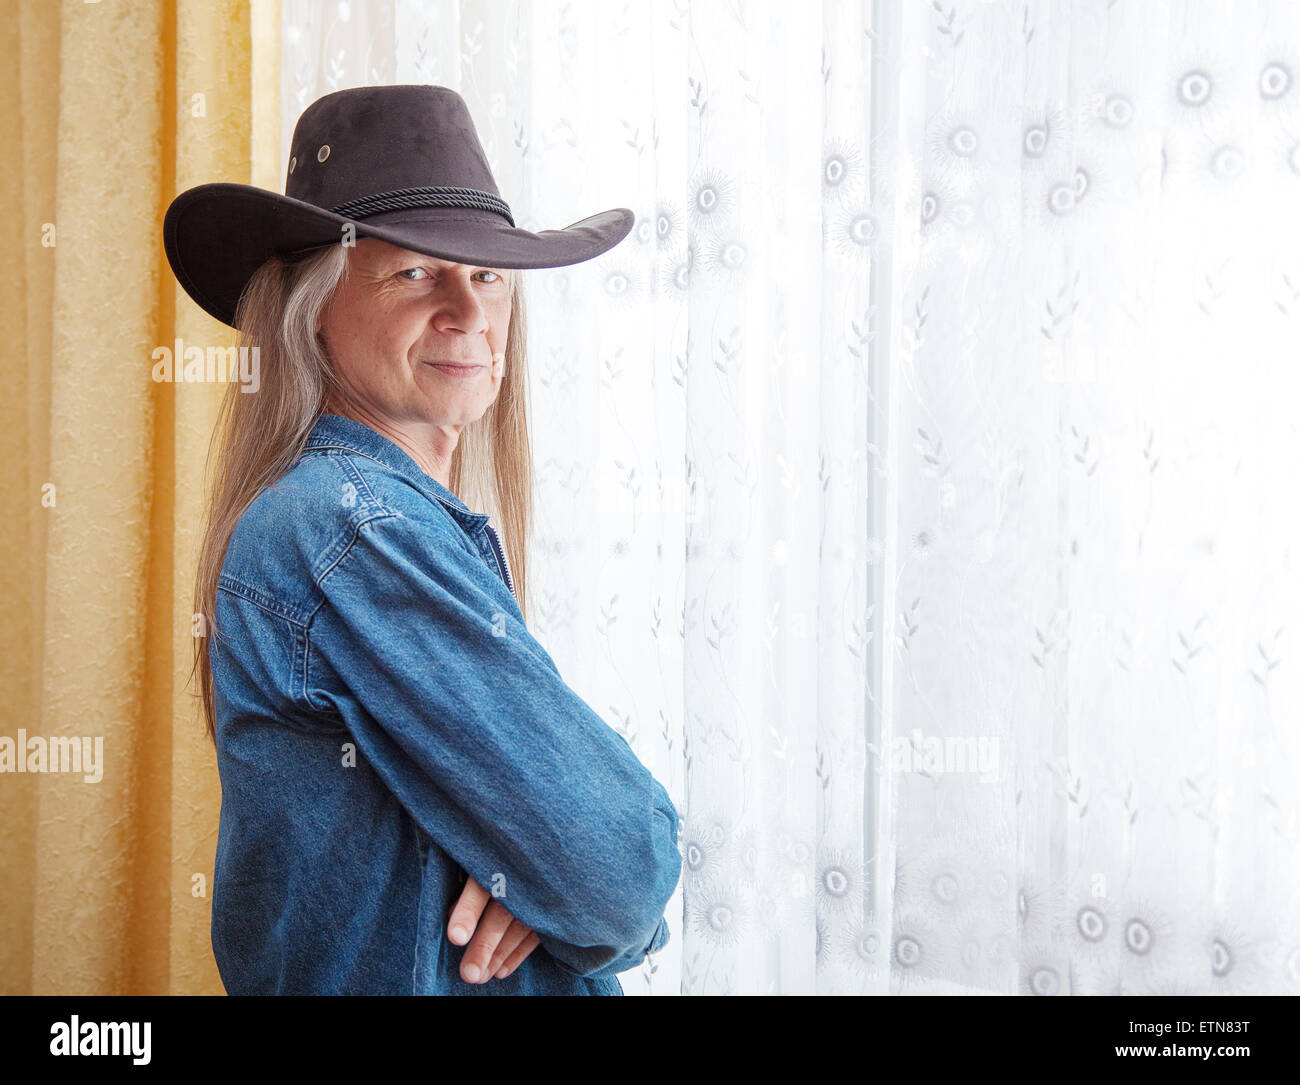 4470624b50f51 Portrait of a mature man with long hair and a cowboy hat - Stock Image